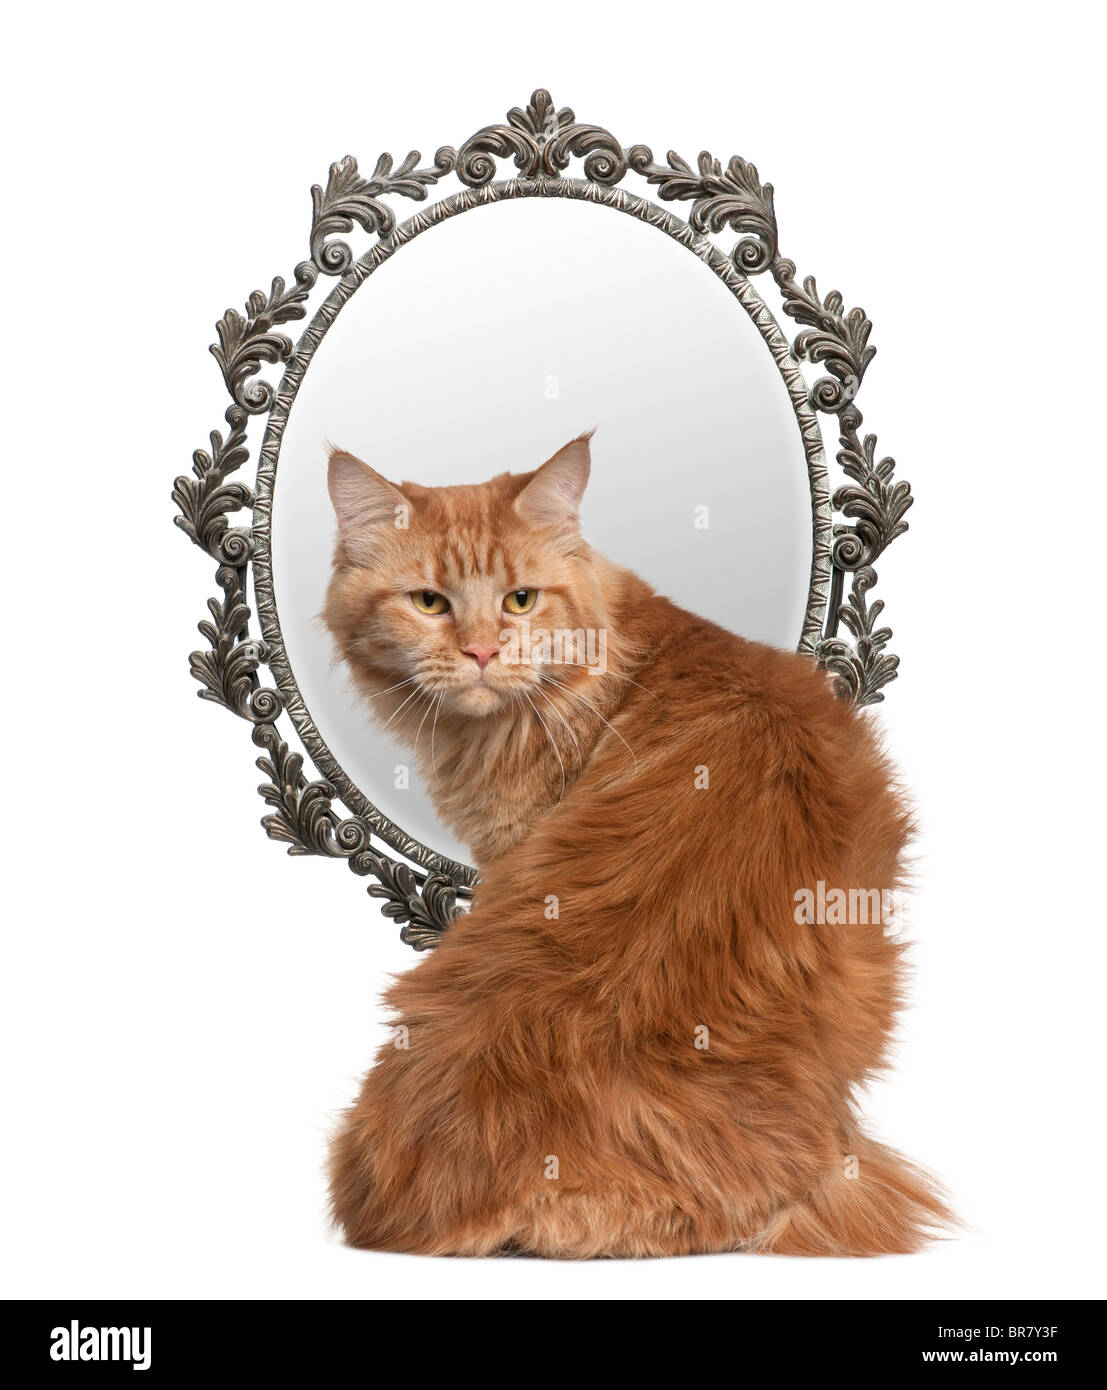 Cat looking back with a mirror in background in front of white background - Stock Image